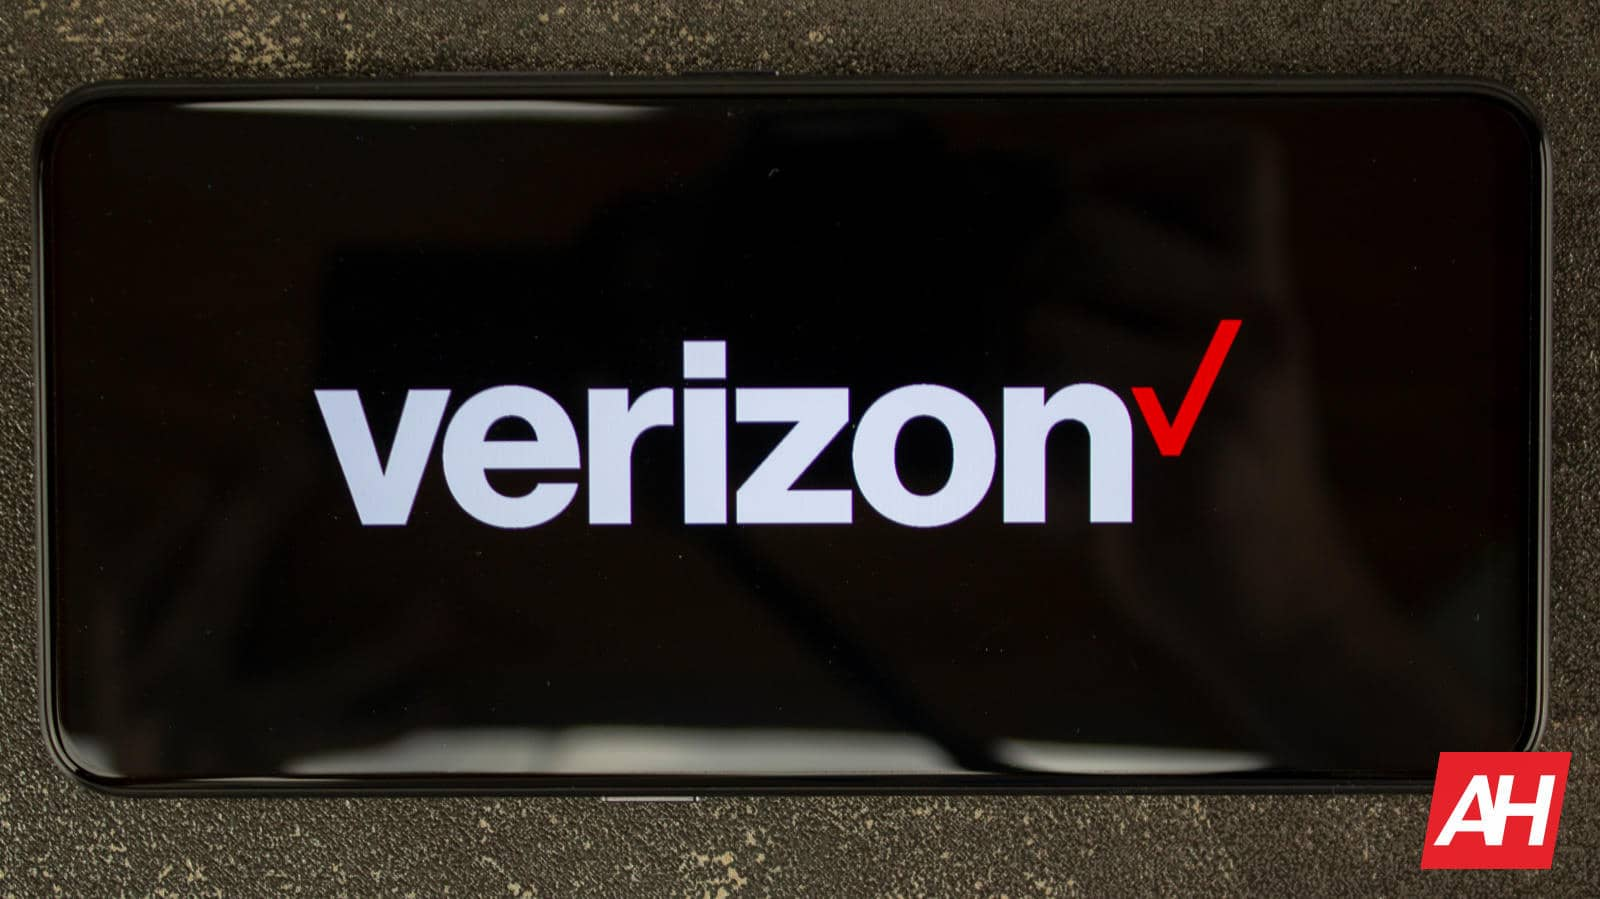 Verizon AH NS 04 1